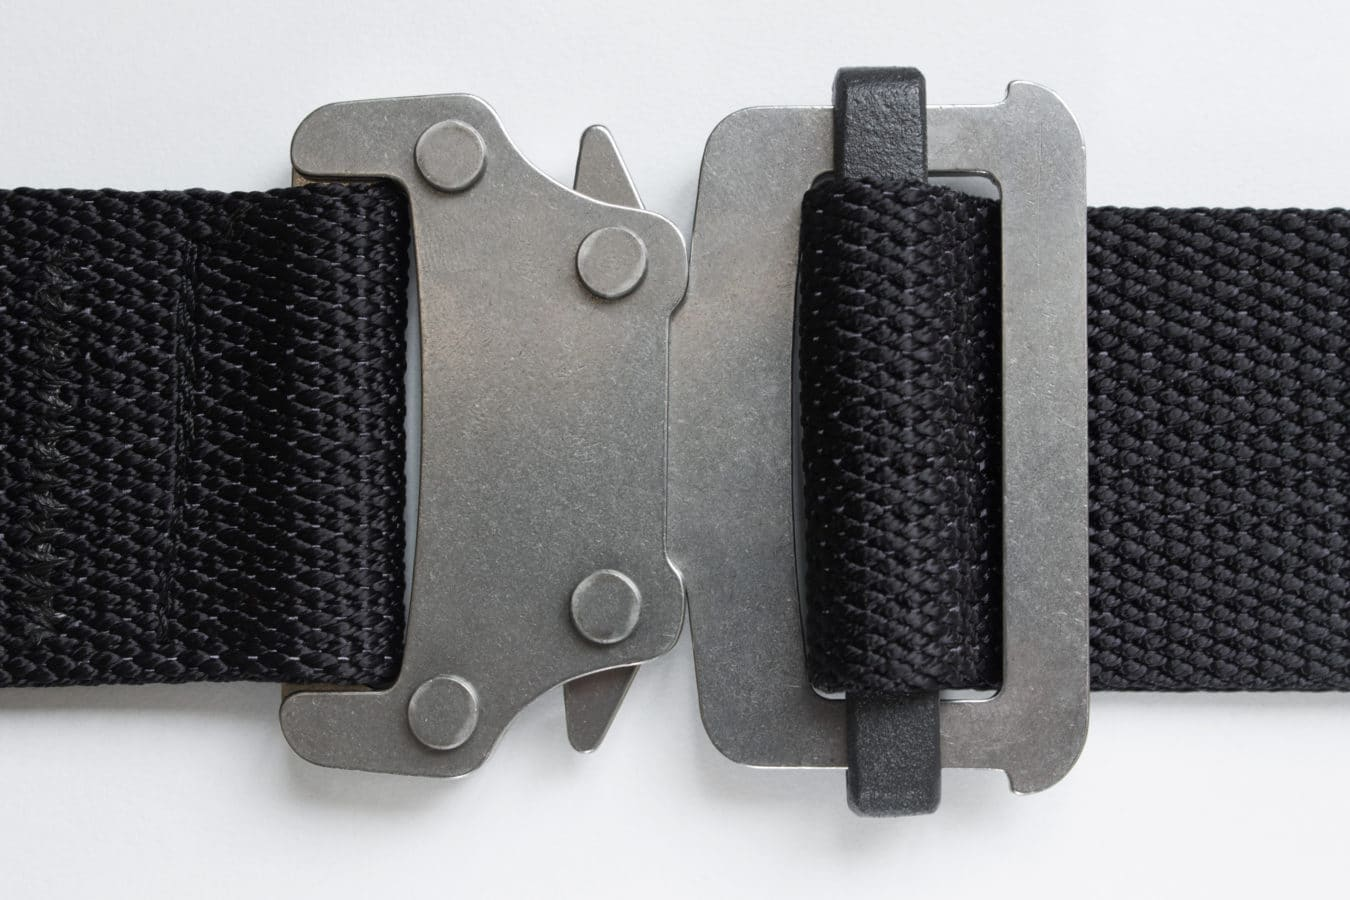 Stainless steel quick release buckle